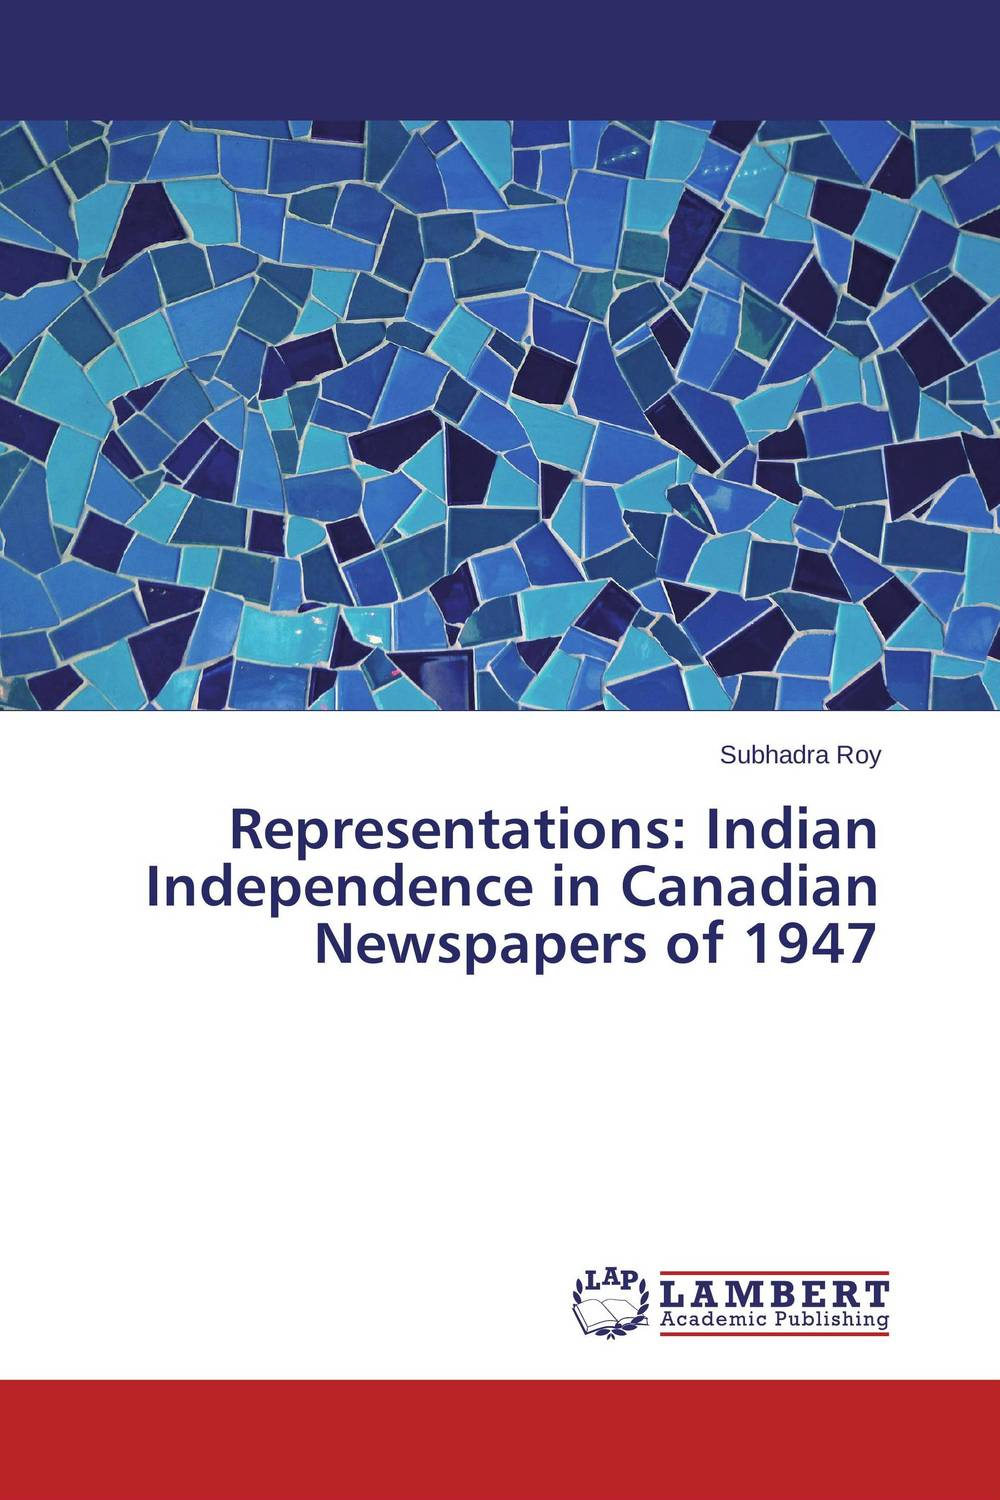 Representations: Indian Independence in Canadian Newspapers of 1947 south asian coins and paper money indian edition including undivided india prior to 1947 ad